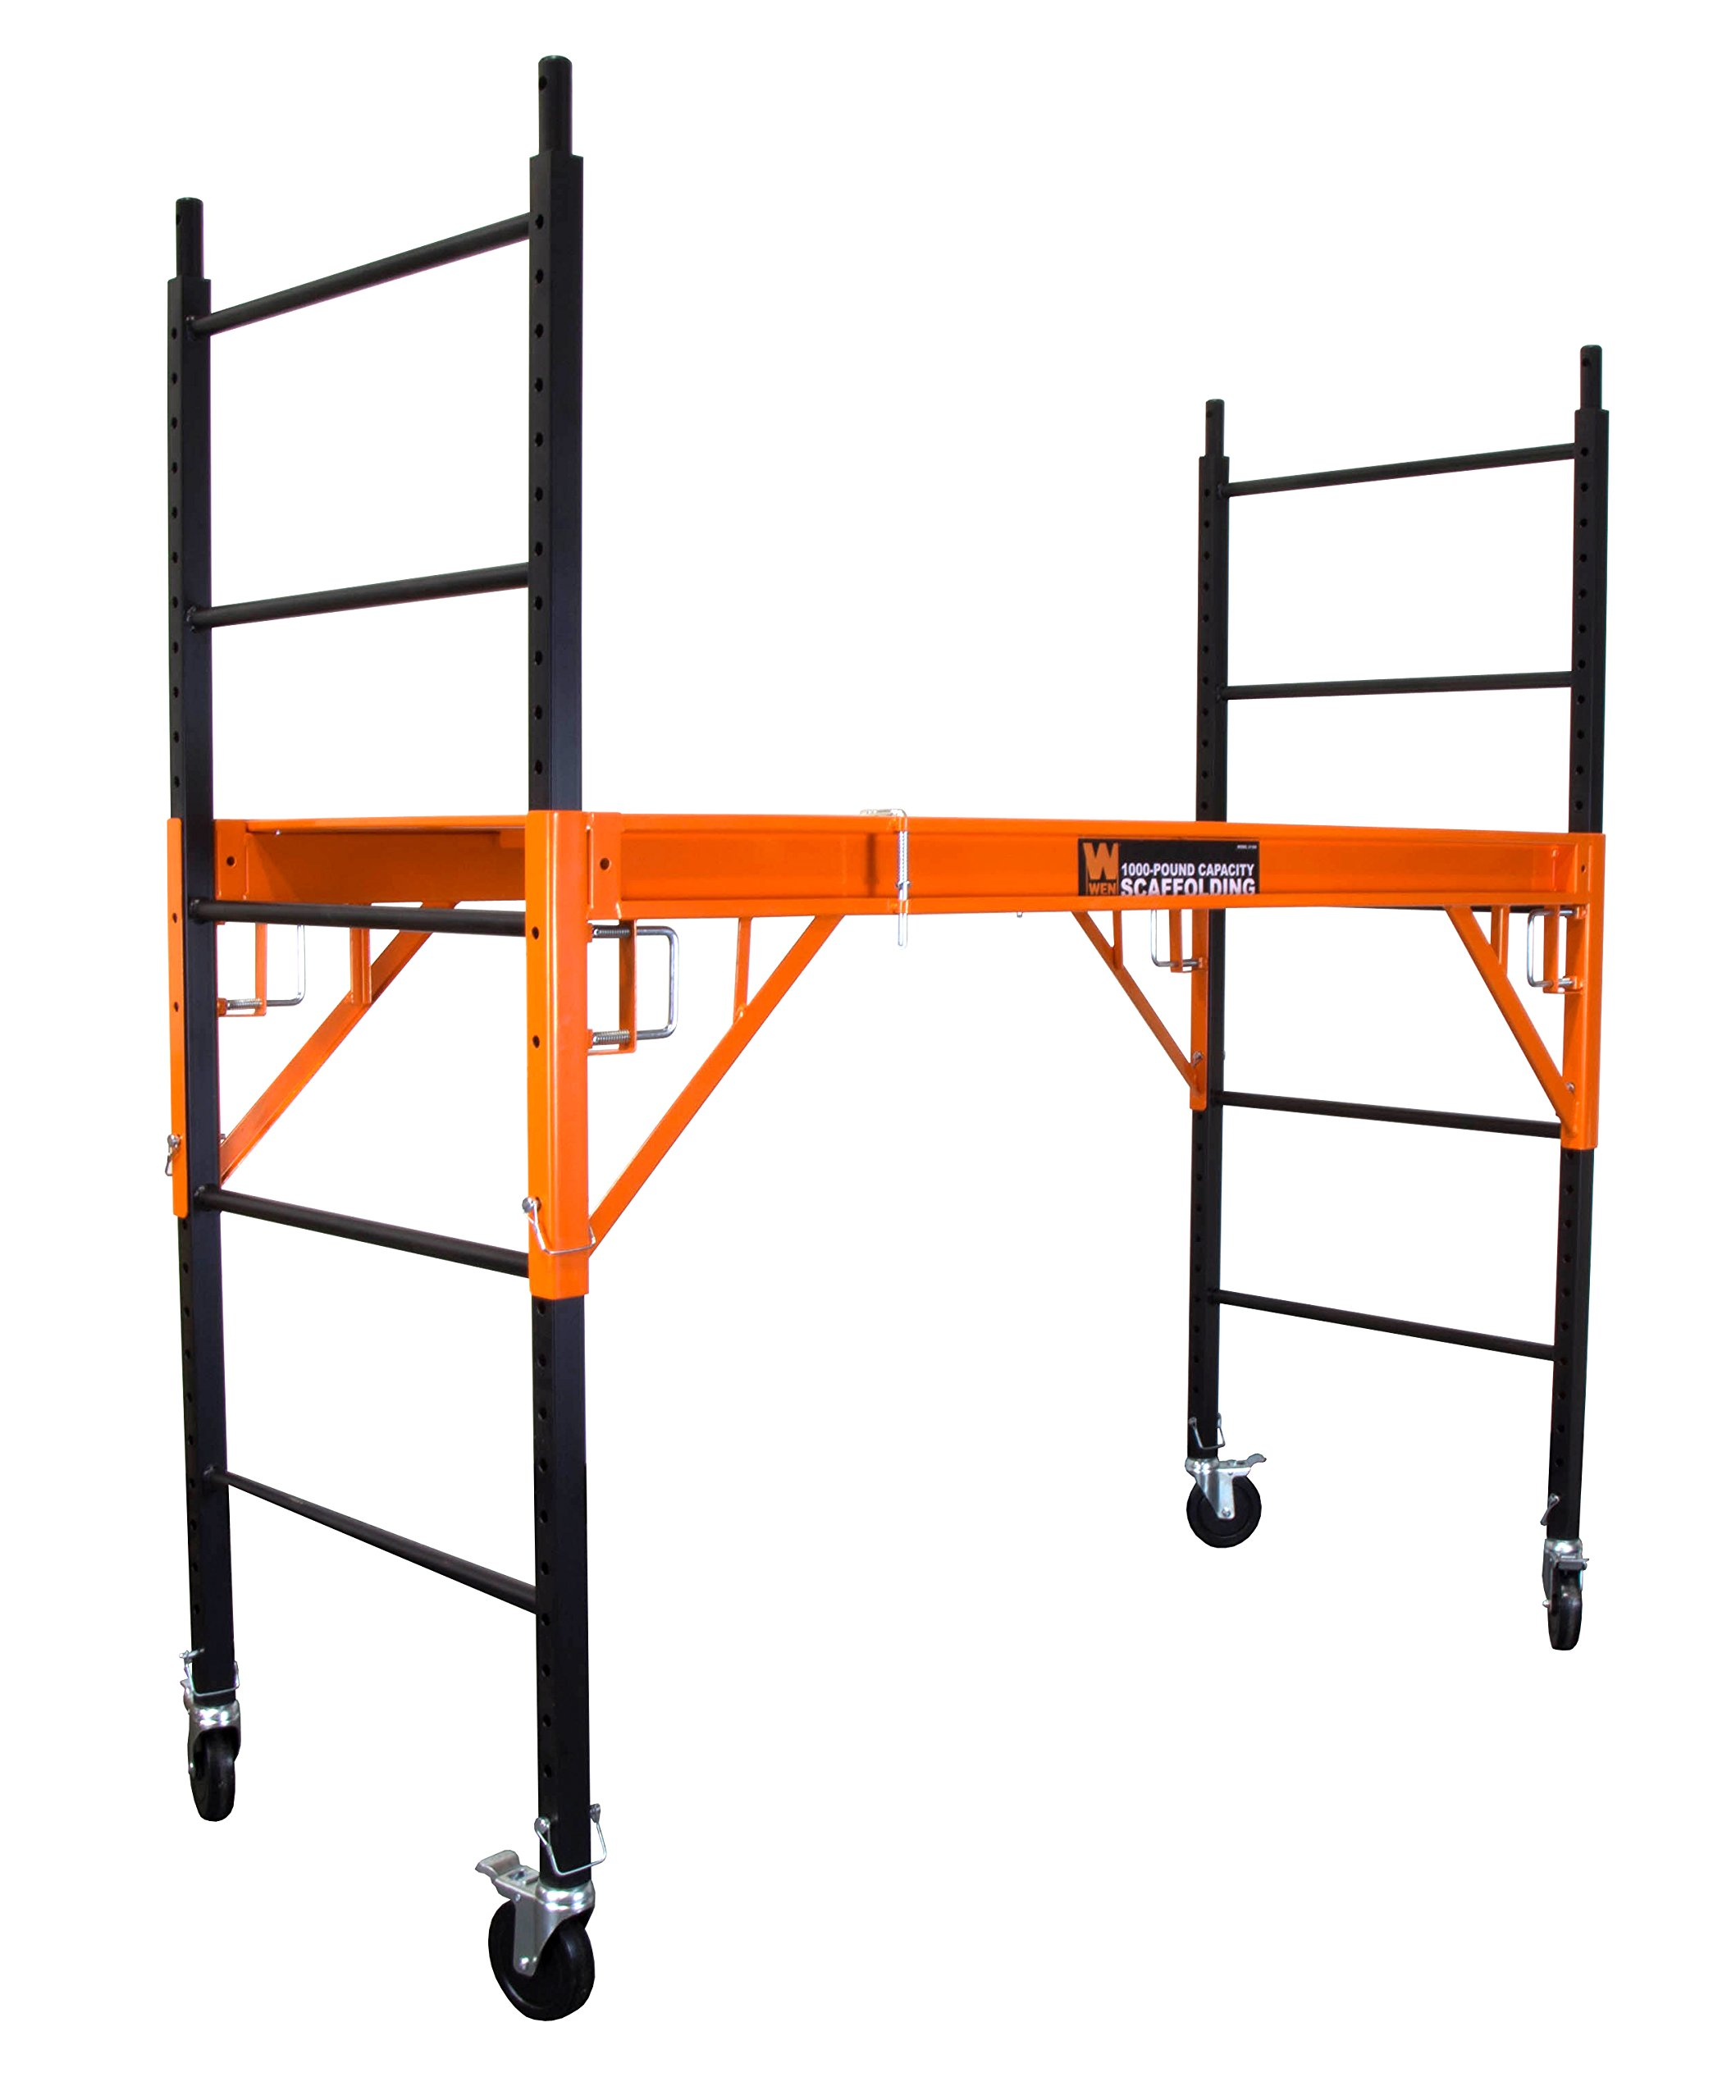 WEN 31109 1000 lb Capacity Rolling Industrial Scaffolding by WEN (Image #1)